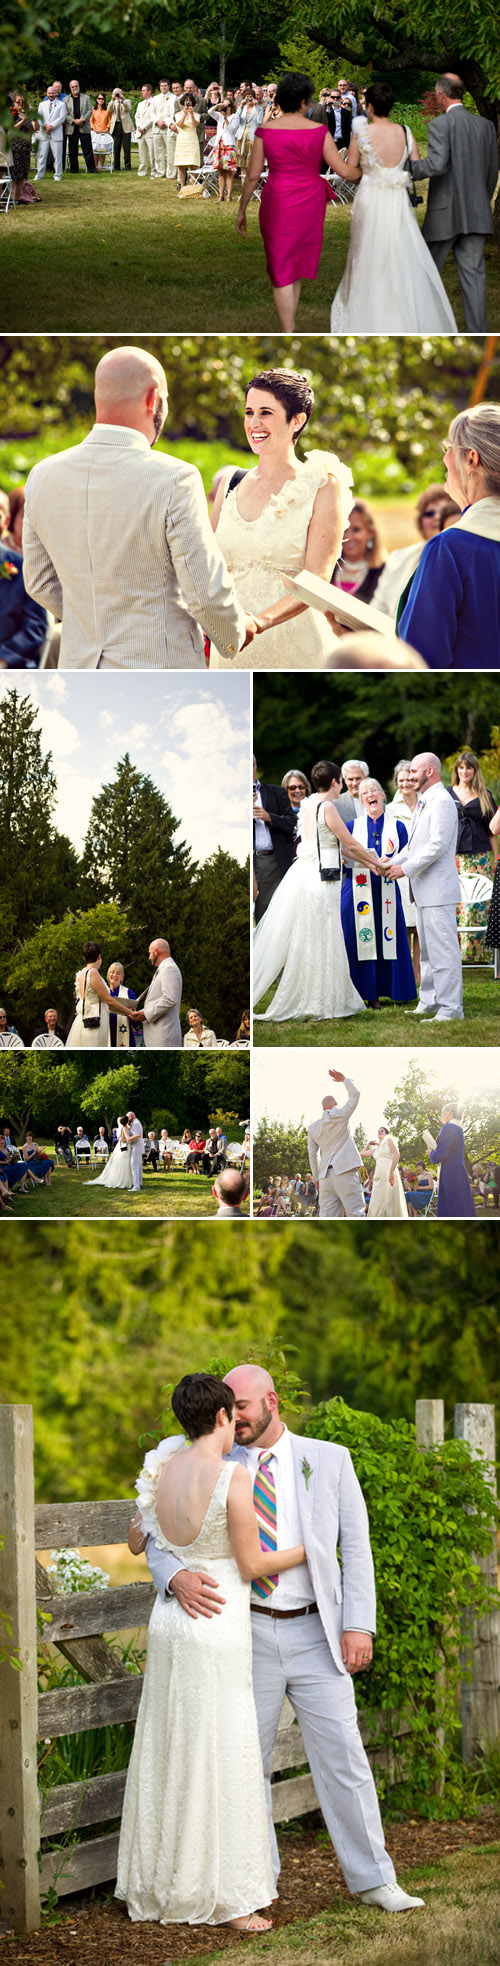 colorful outdoor indian-inspired farm wedding ceremony photographed by Gabriel Boone